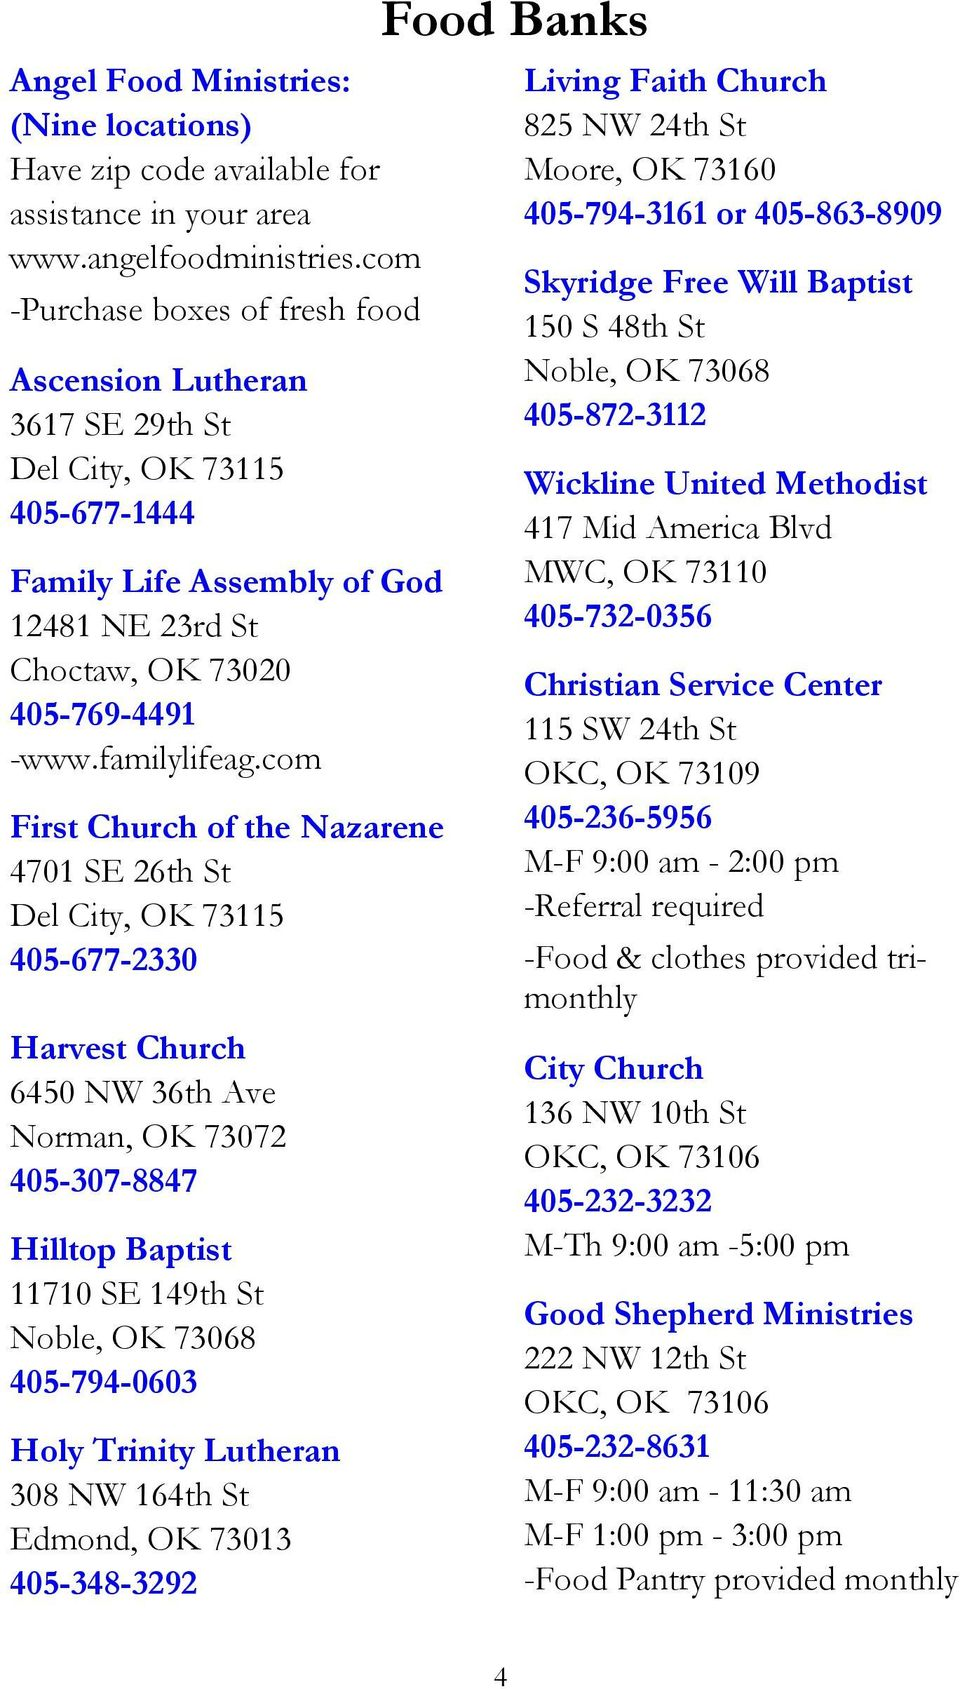 com First Church of the Nazarene 4701 SE 26th St Del City, OK 73115 405-677-2330 Harvest Church 6450 NW 36th Ave Norman, OK 73072 405-307-8847 Hilltop Baptist 11710 SE 149th St Noble, OK 73068